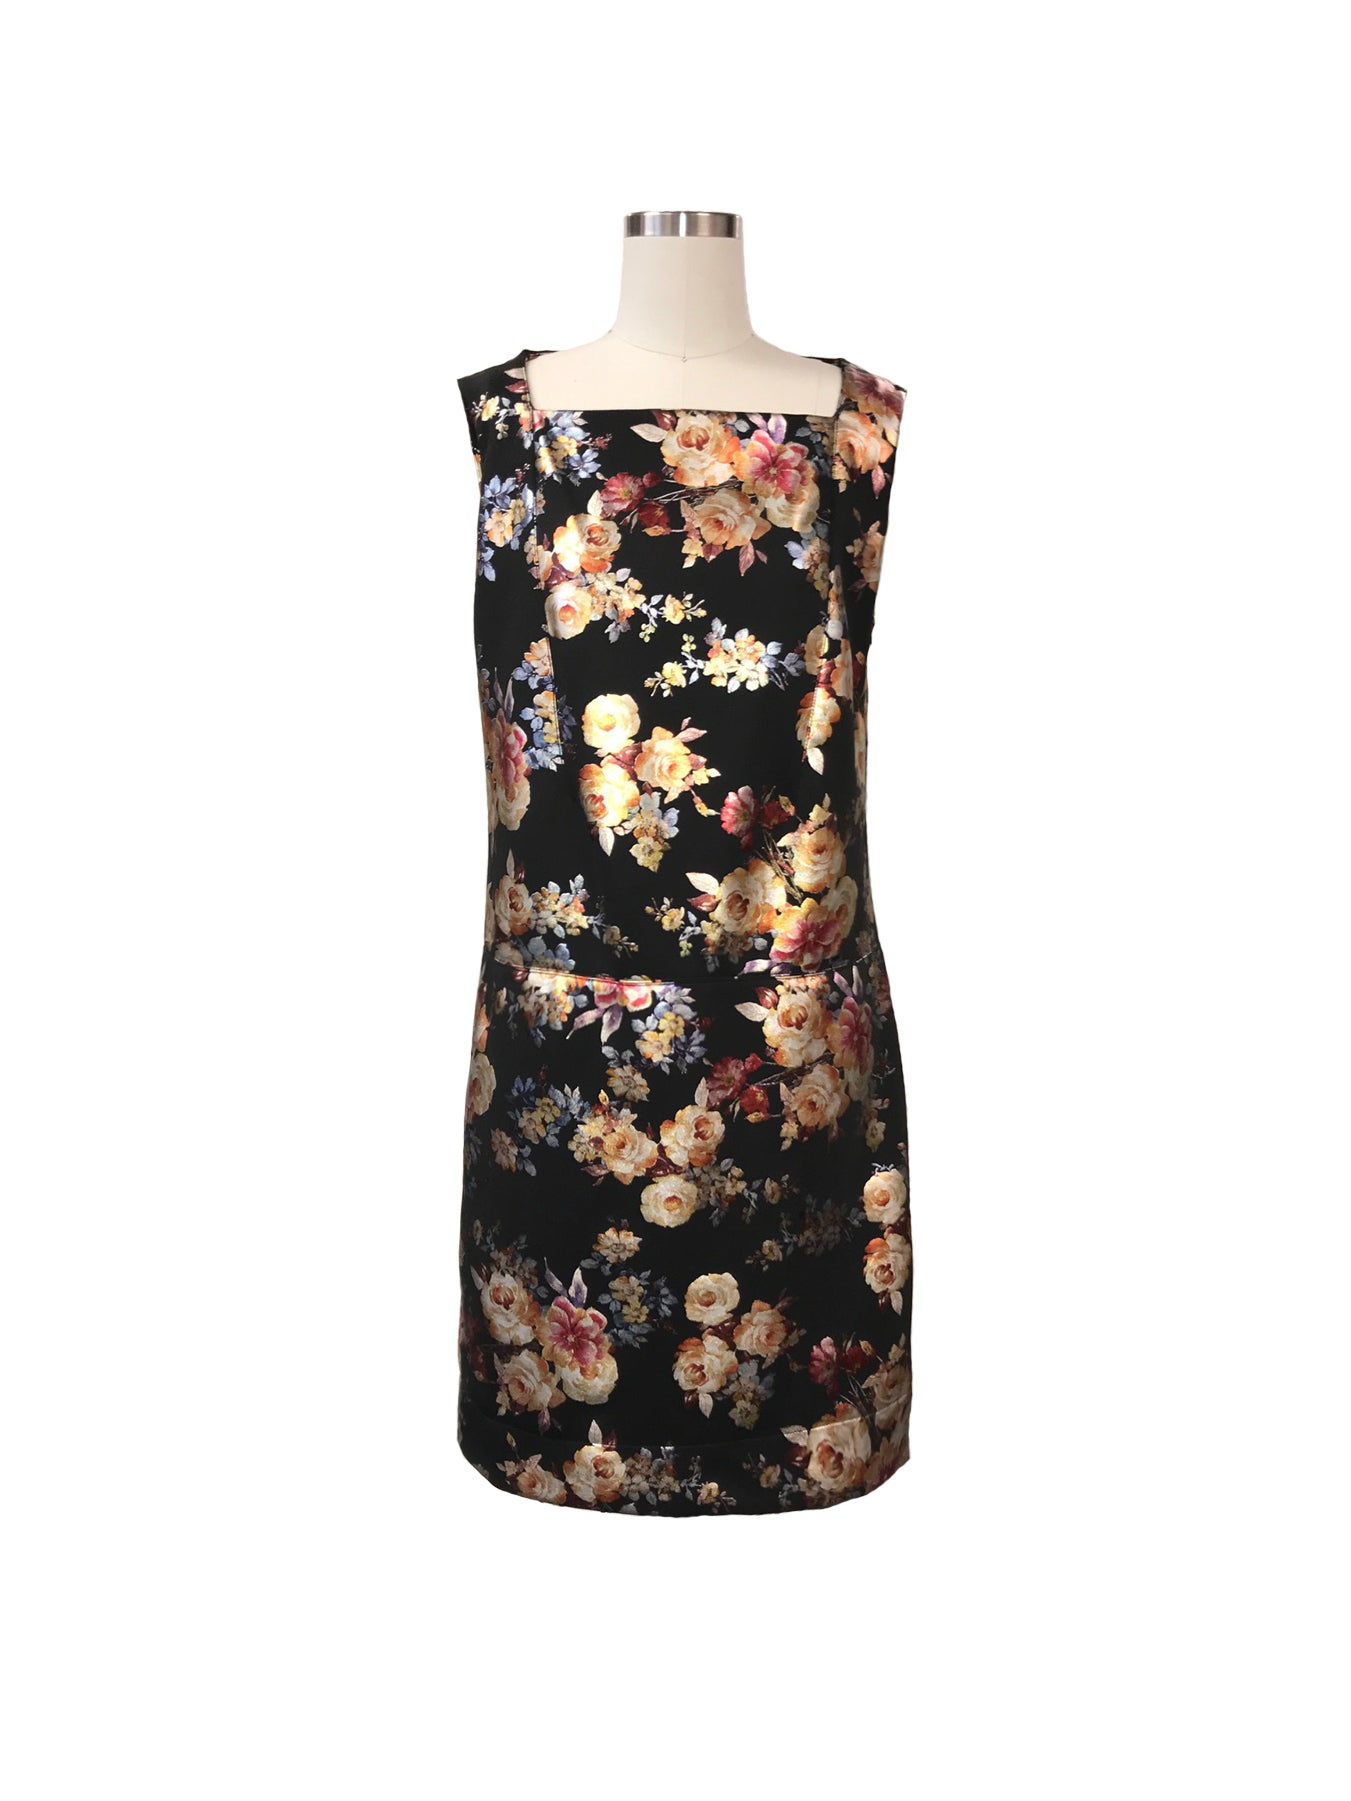 Historic New York Metallic Gold Floral Dress